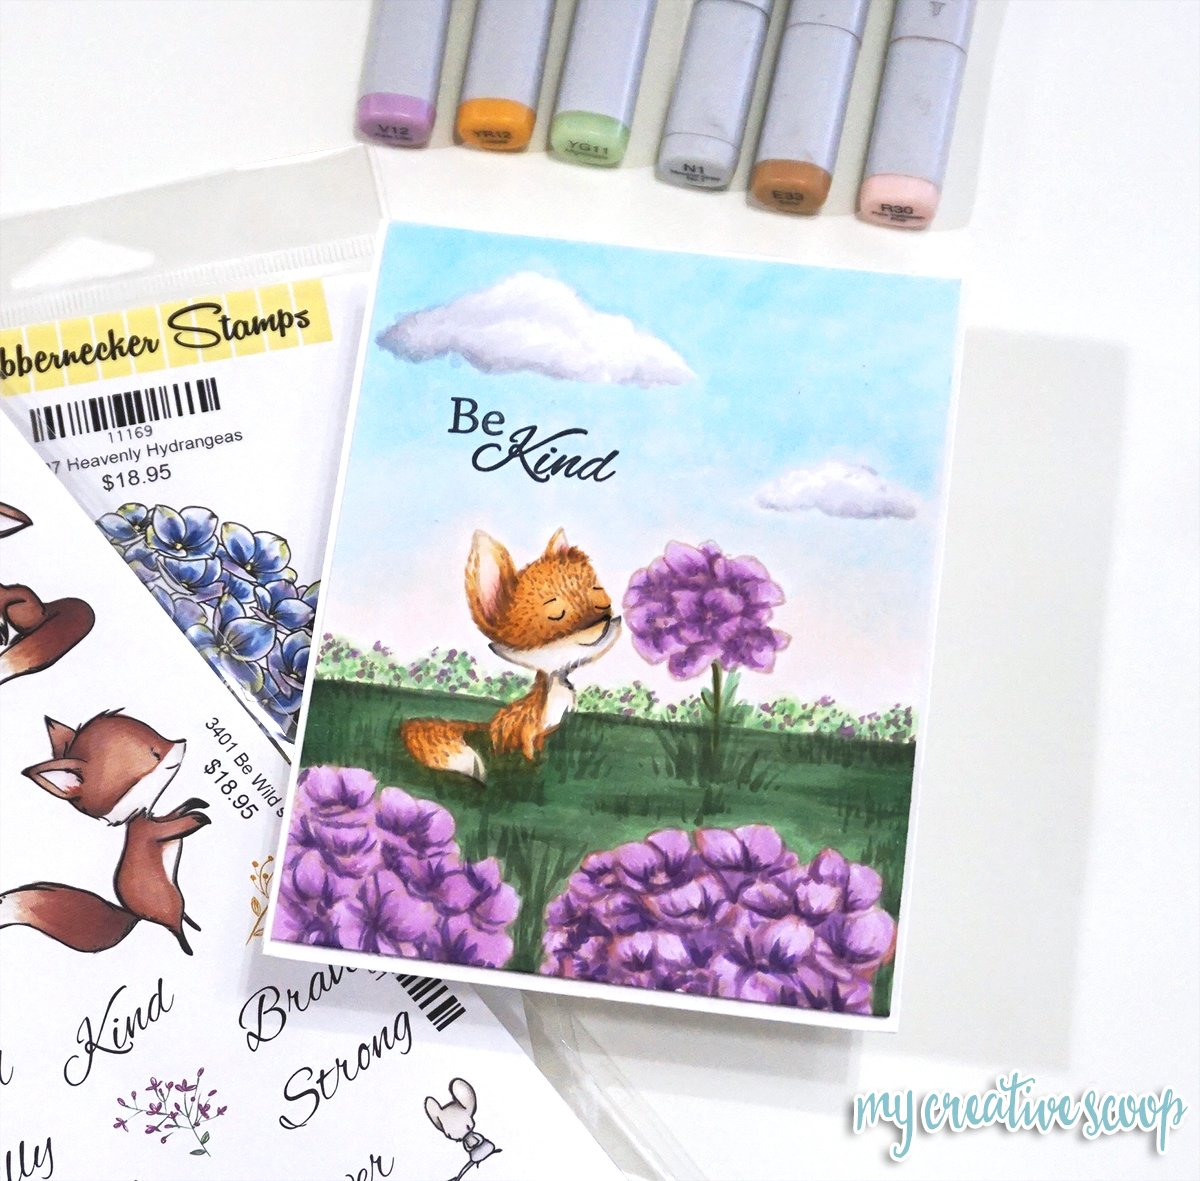 Create Depth Perception with Different Size Stamps